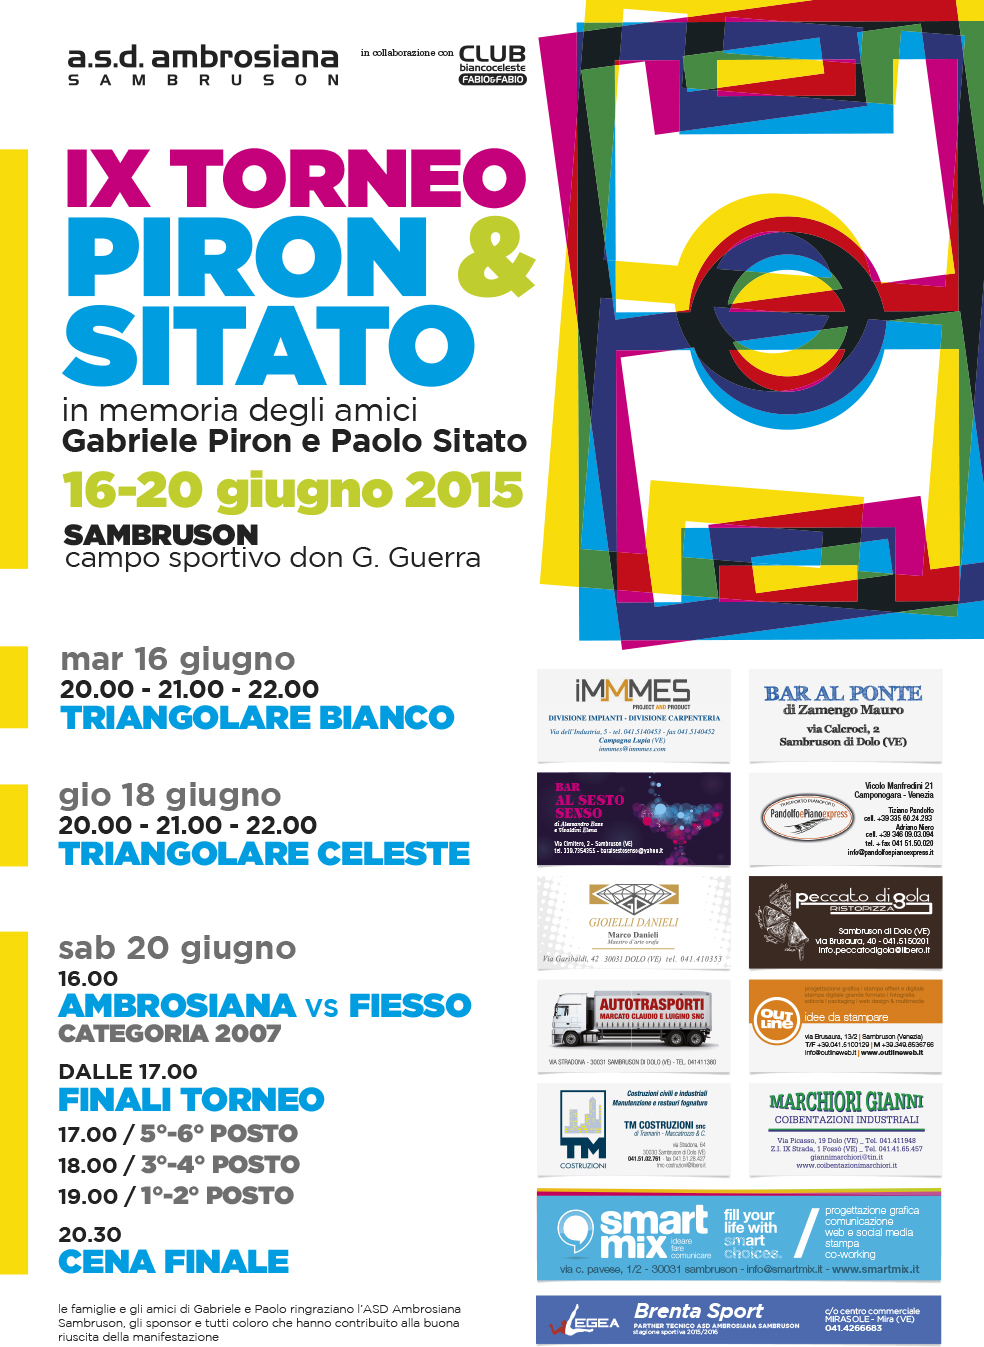 50x70_torneo_pironsitato_2015_PRINT